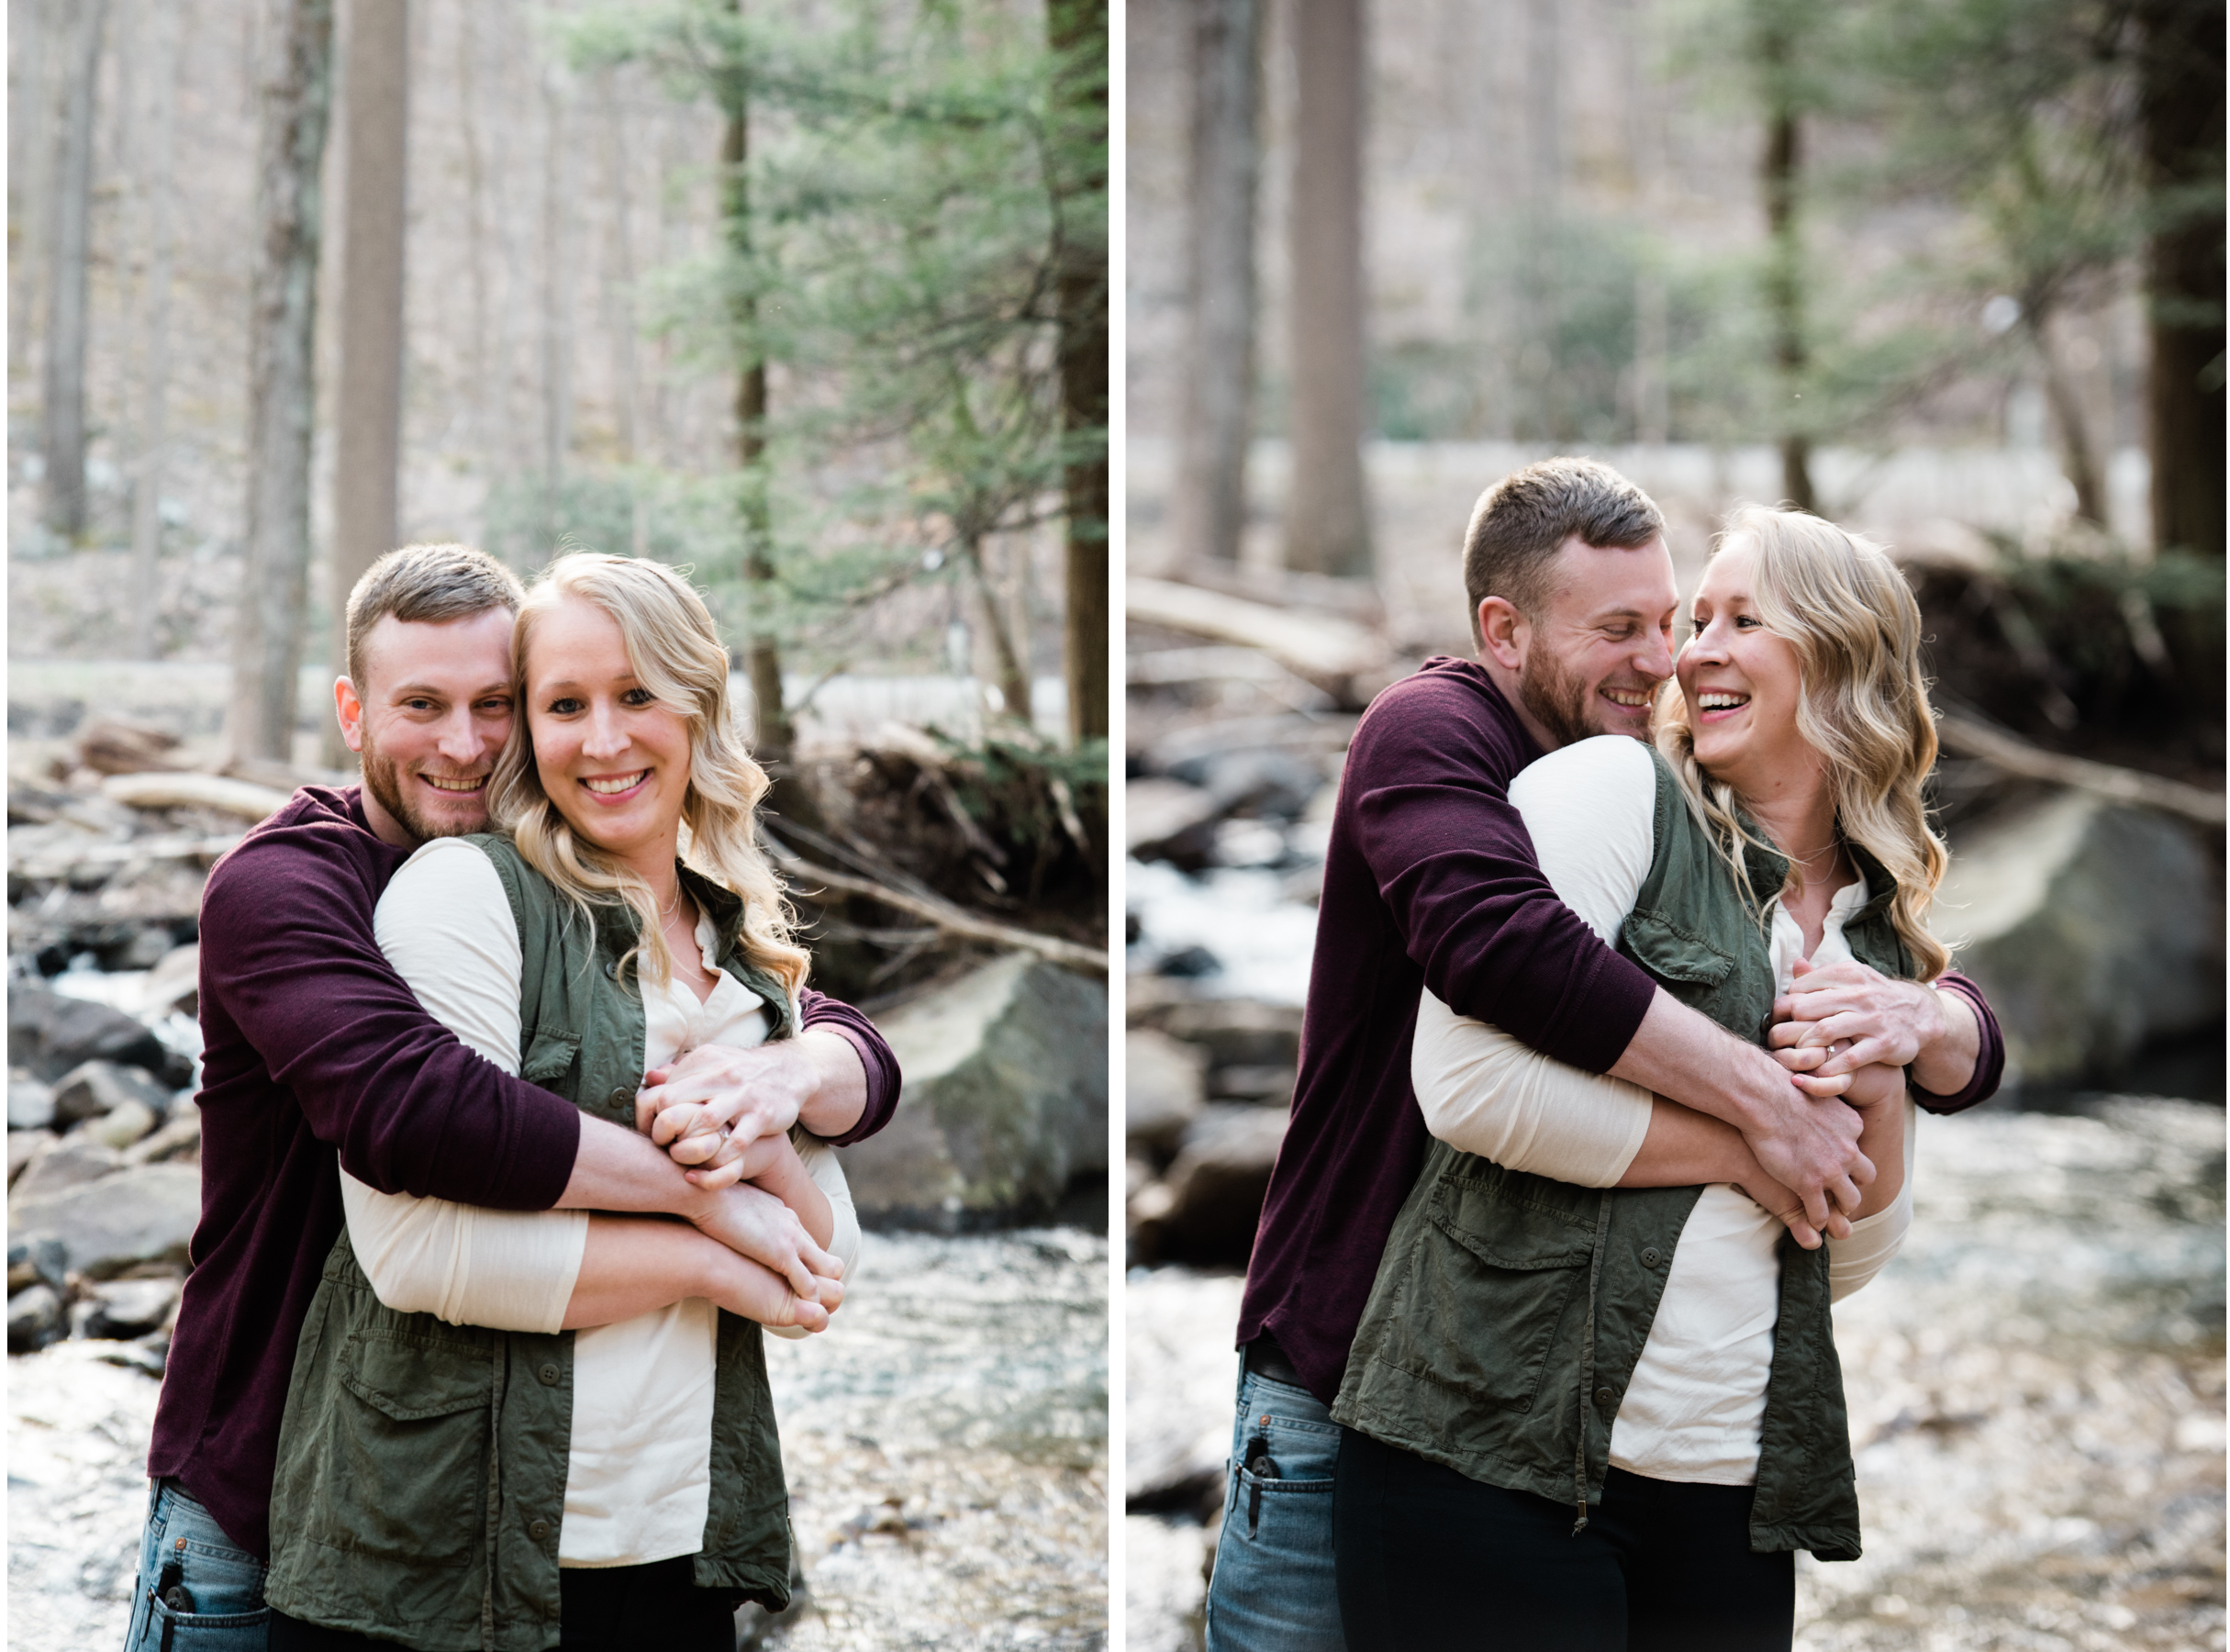 Ligonier Engagement Session, Linn Run State Park, Mariah Fisher Photography, Ligonier PA.jpg